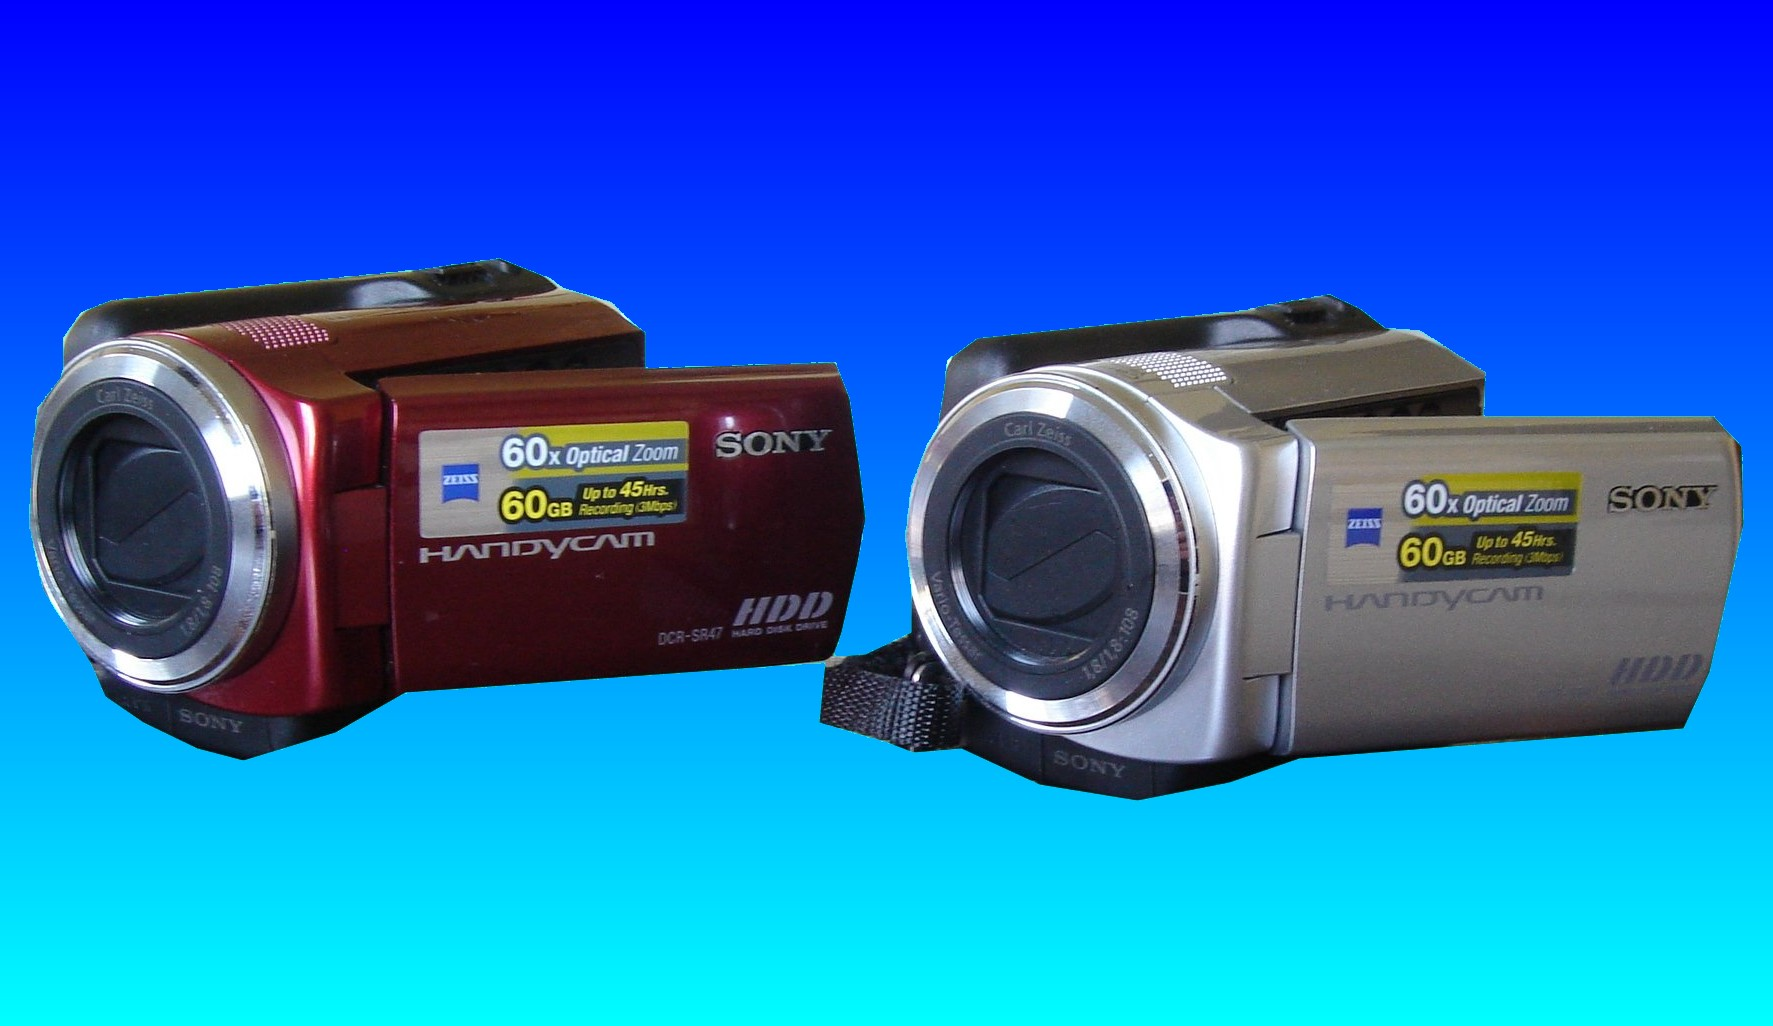 Here are two Sony DCR handycams that used an HDD to store the video. These cameras came from the same customer who had experienced data loss when they formatted the hard drive and deleted all the video clips.